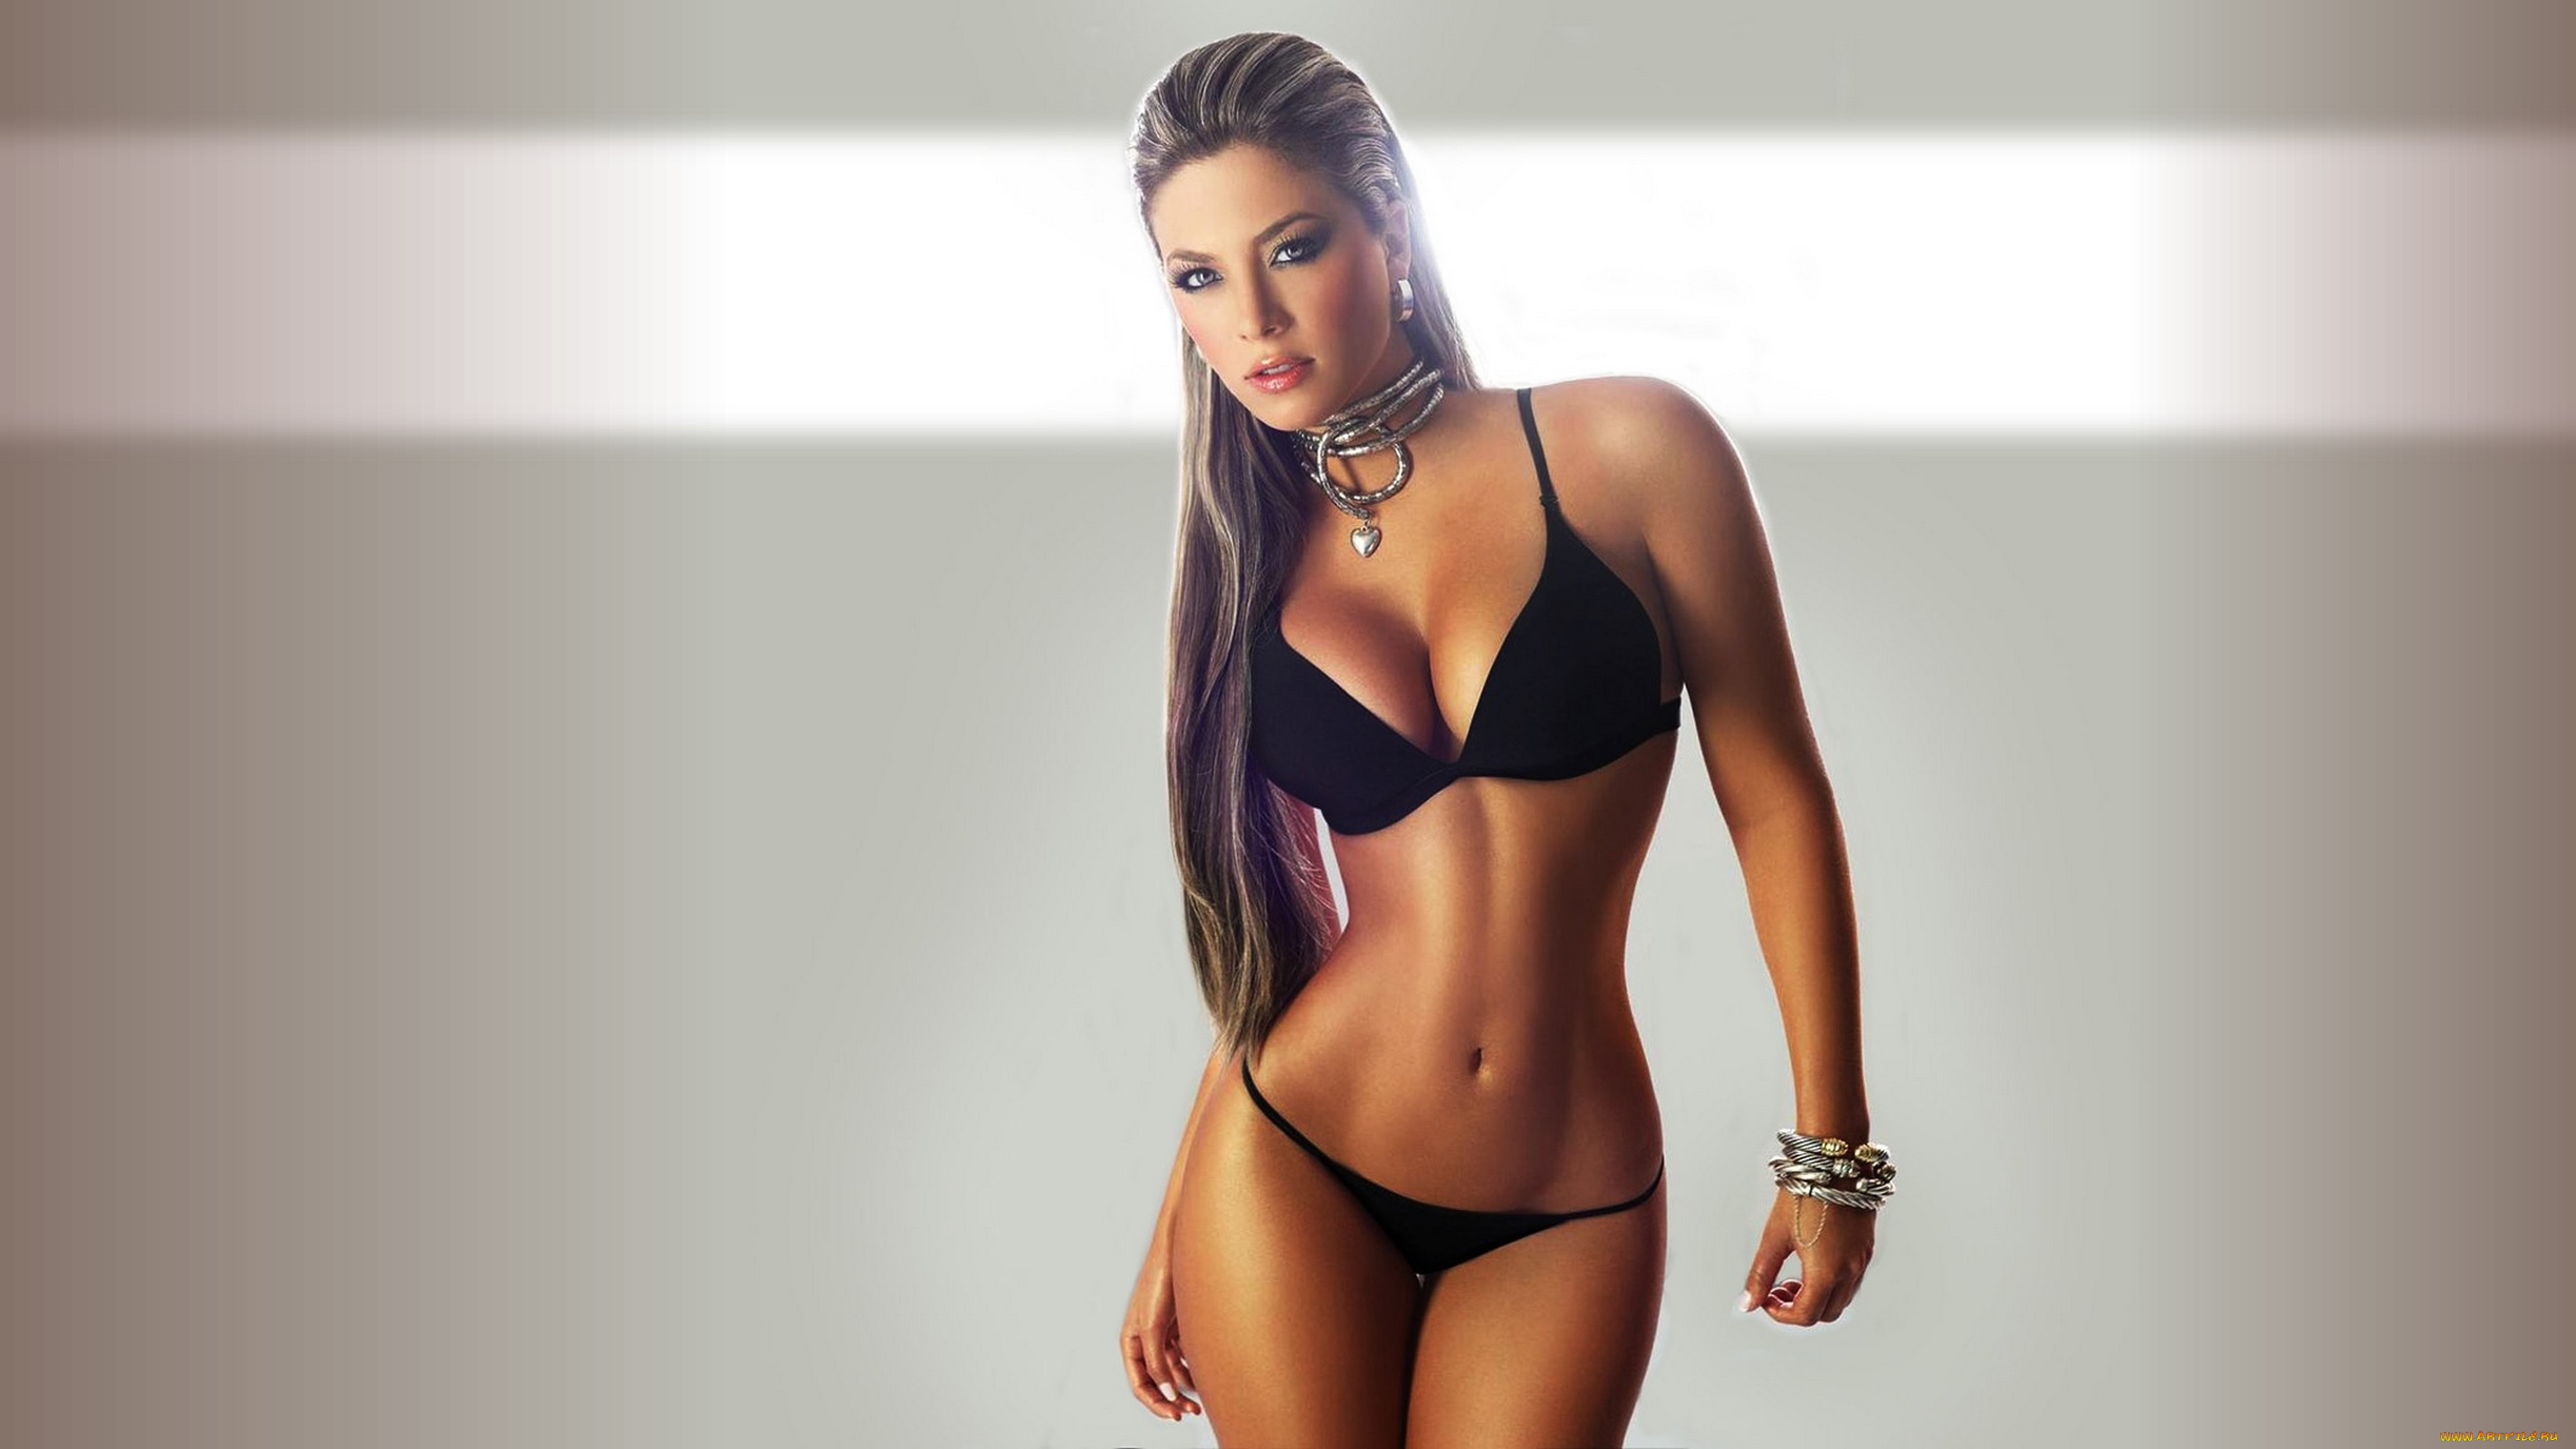 Sexy hot girls for pc